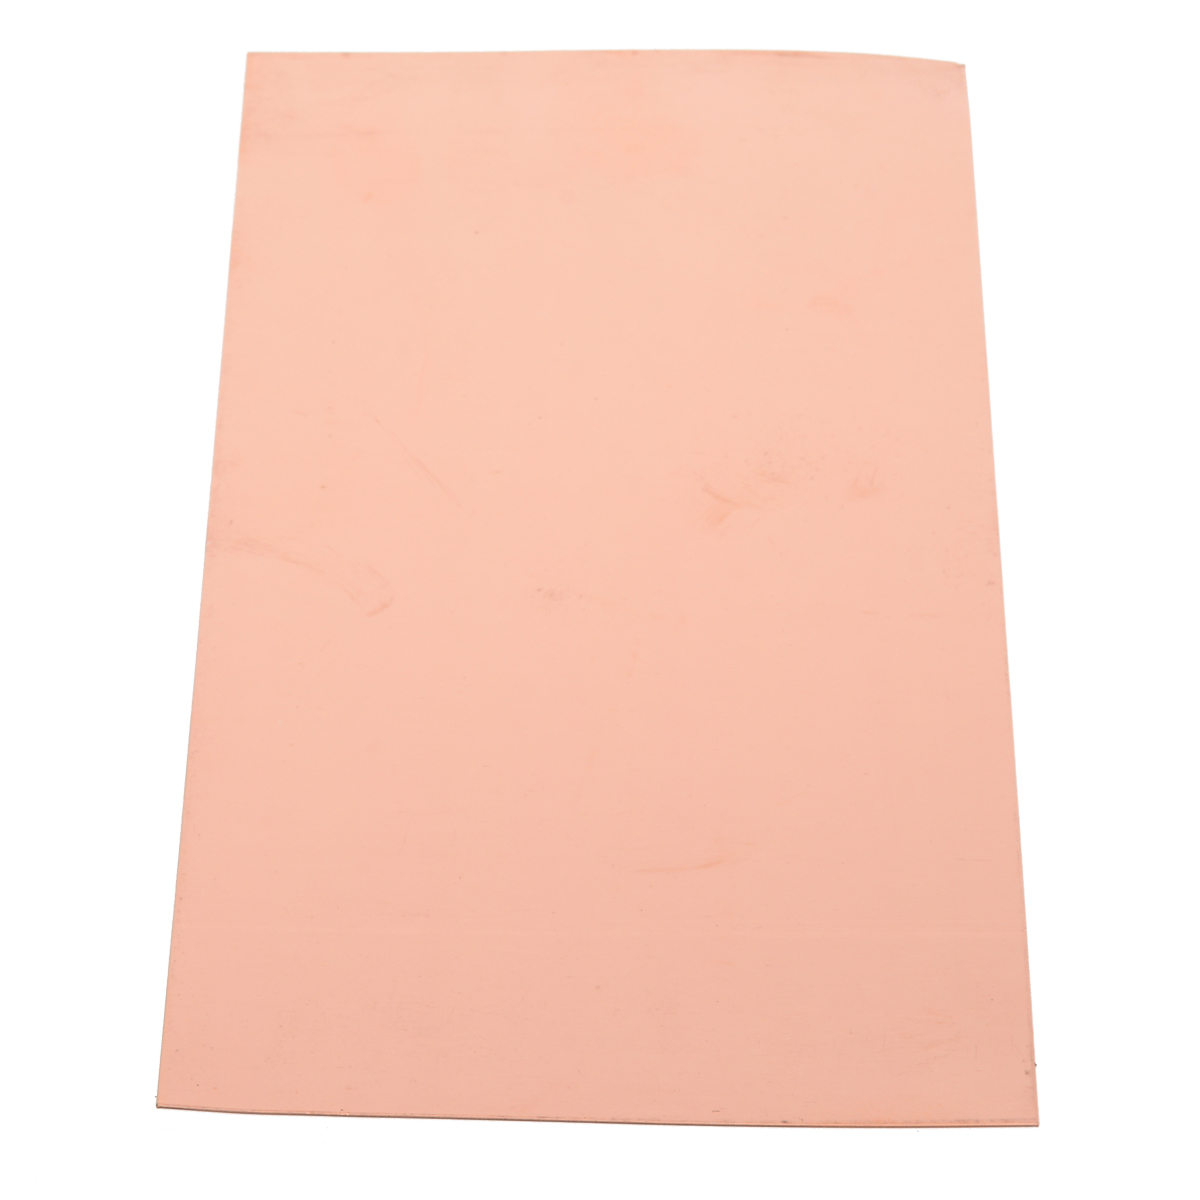 1pc 99.9% Pure Copper Sheet 100*200*0.5MM Cu Metal Plate Foil Panel Thermal Stability Pads